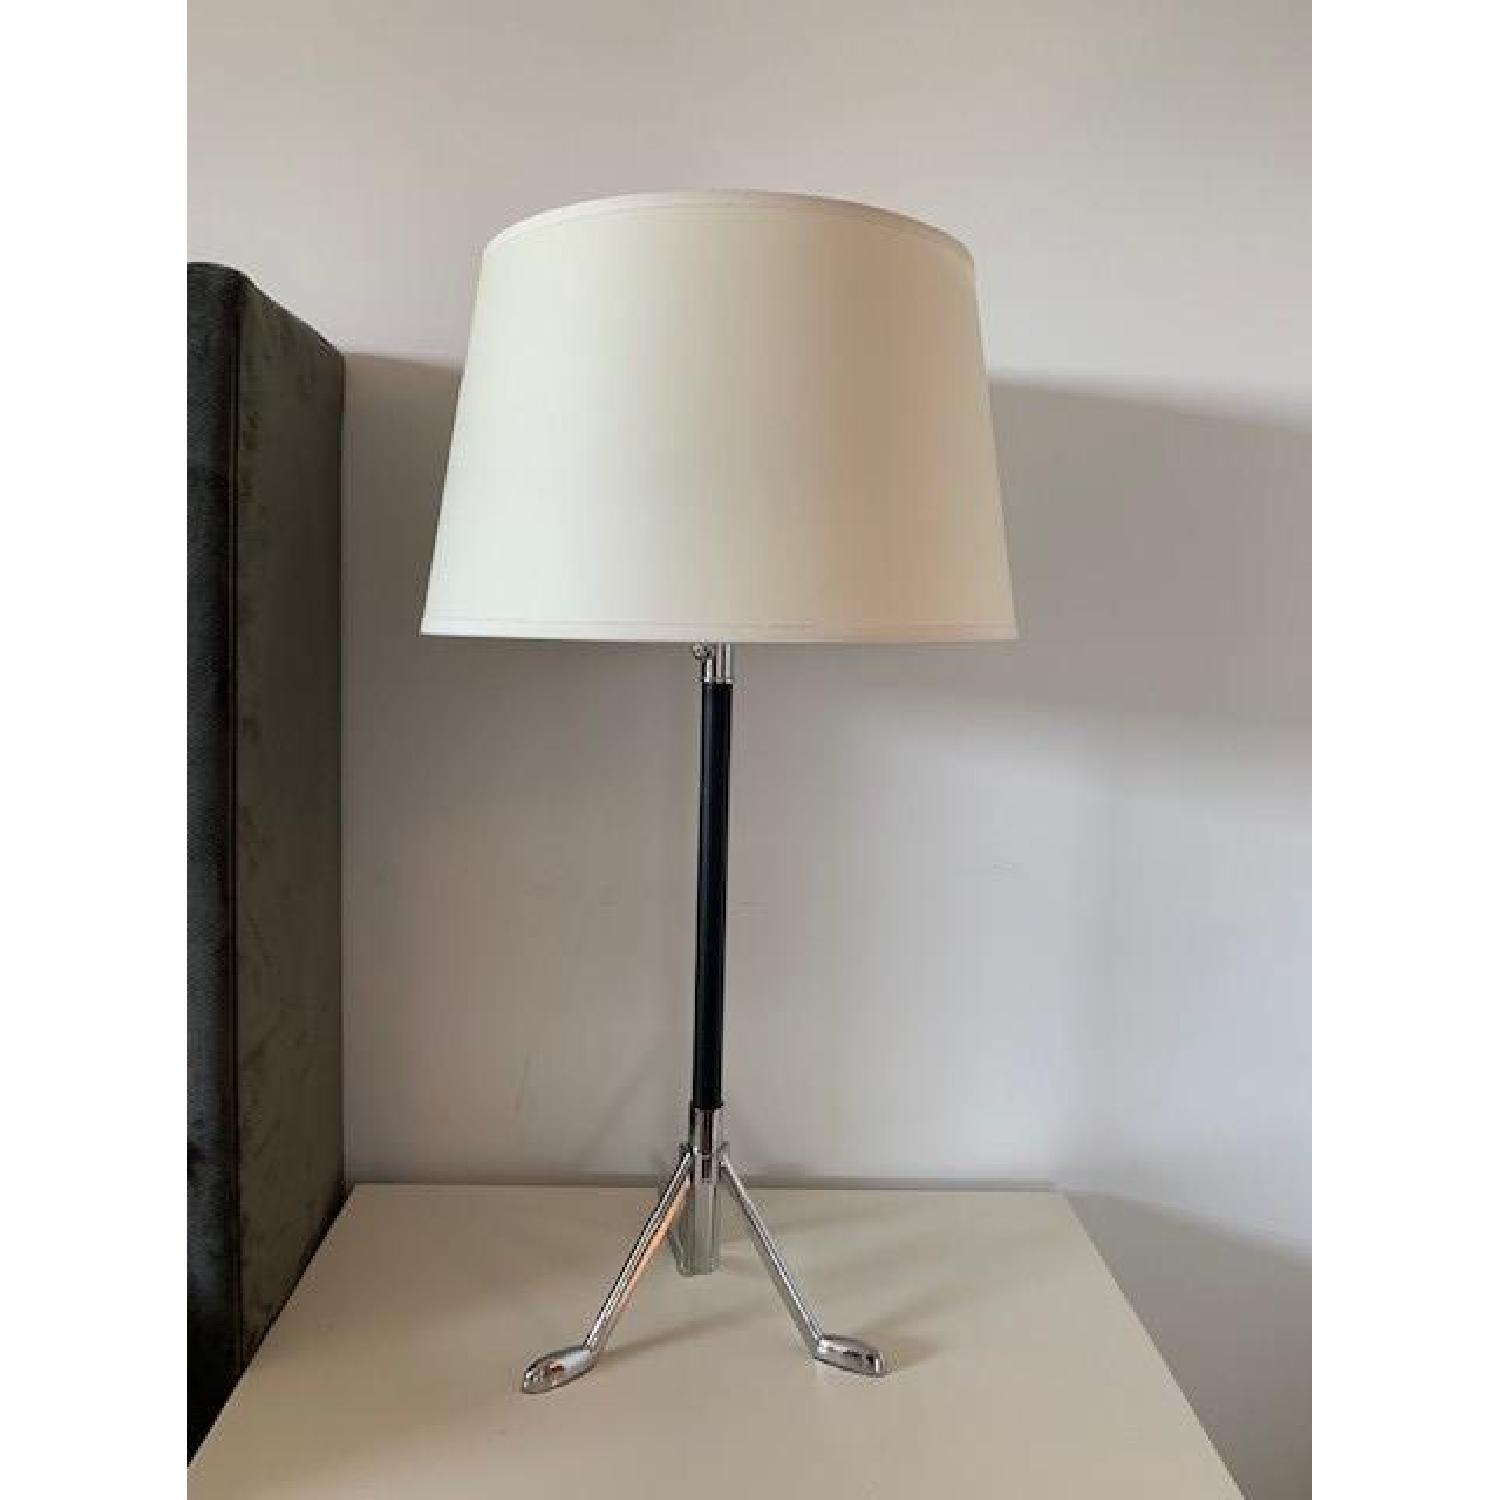 Robert Abbey Todd Table Lamps w/ White Shades - image-1